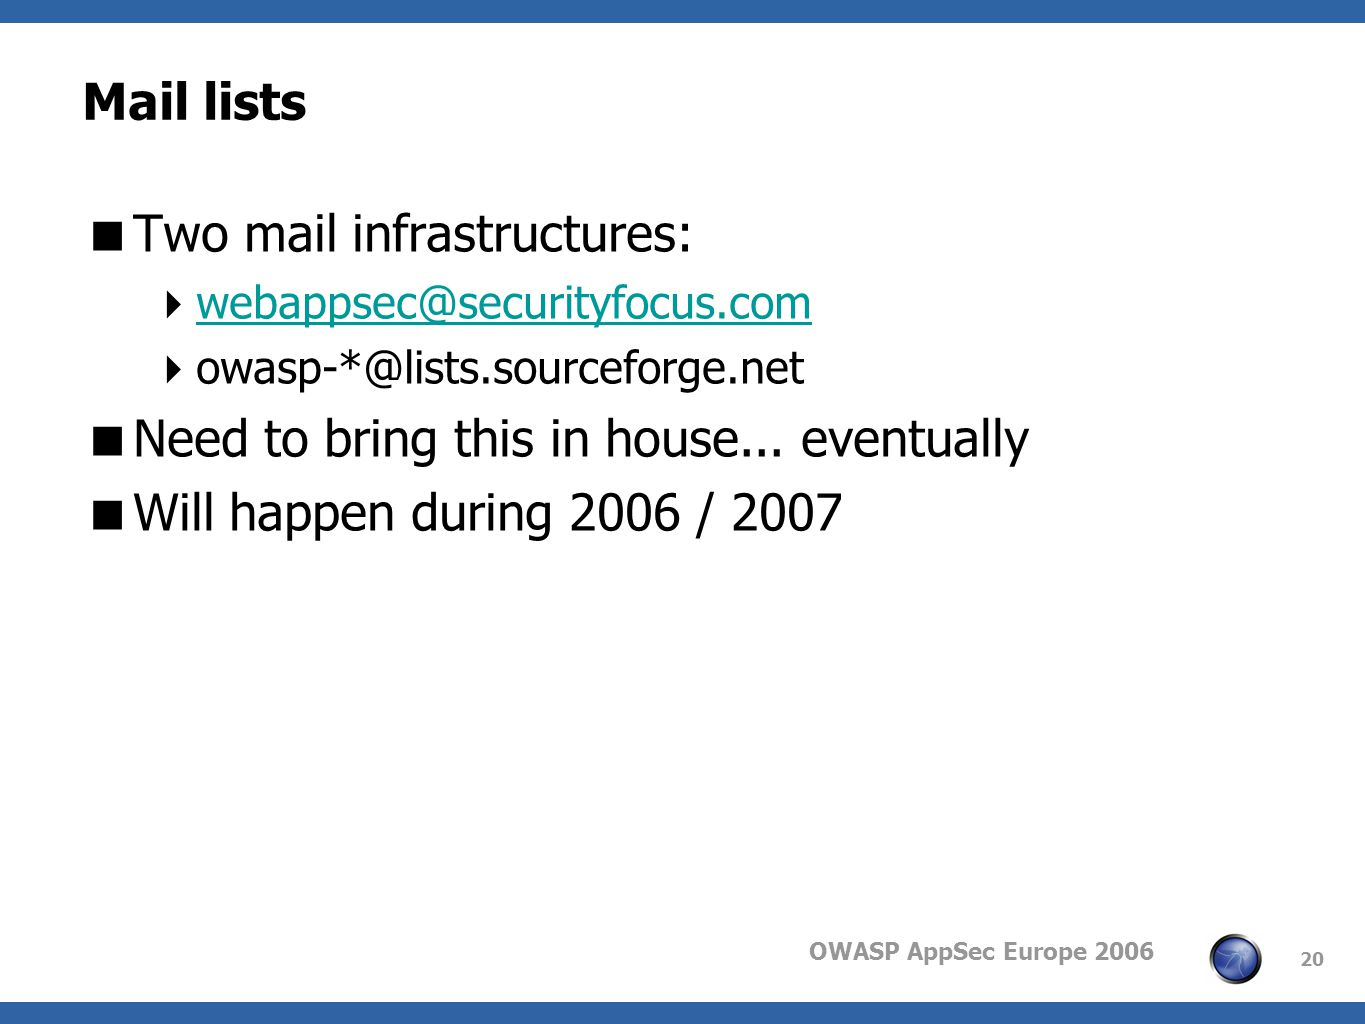 OWASP AppSec Europe 2006 20 Mail lists Two mail infrastructures: webappsec@securityfocus.com owasp-*@lists.sourceforge.net Need to bring this in house...